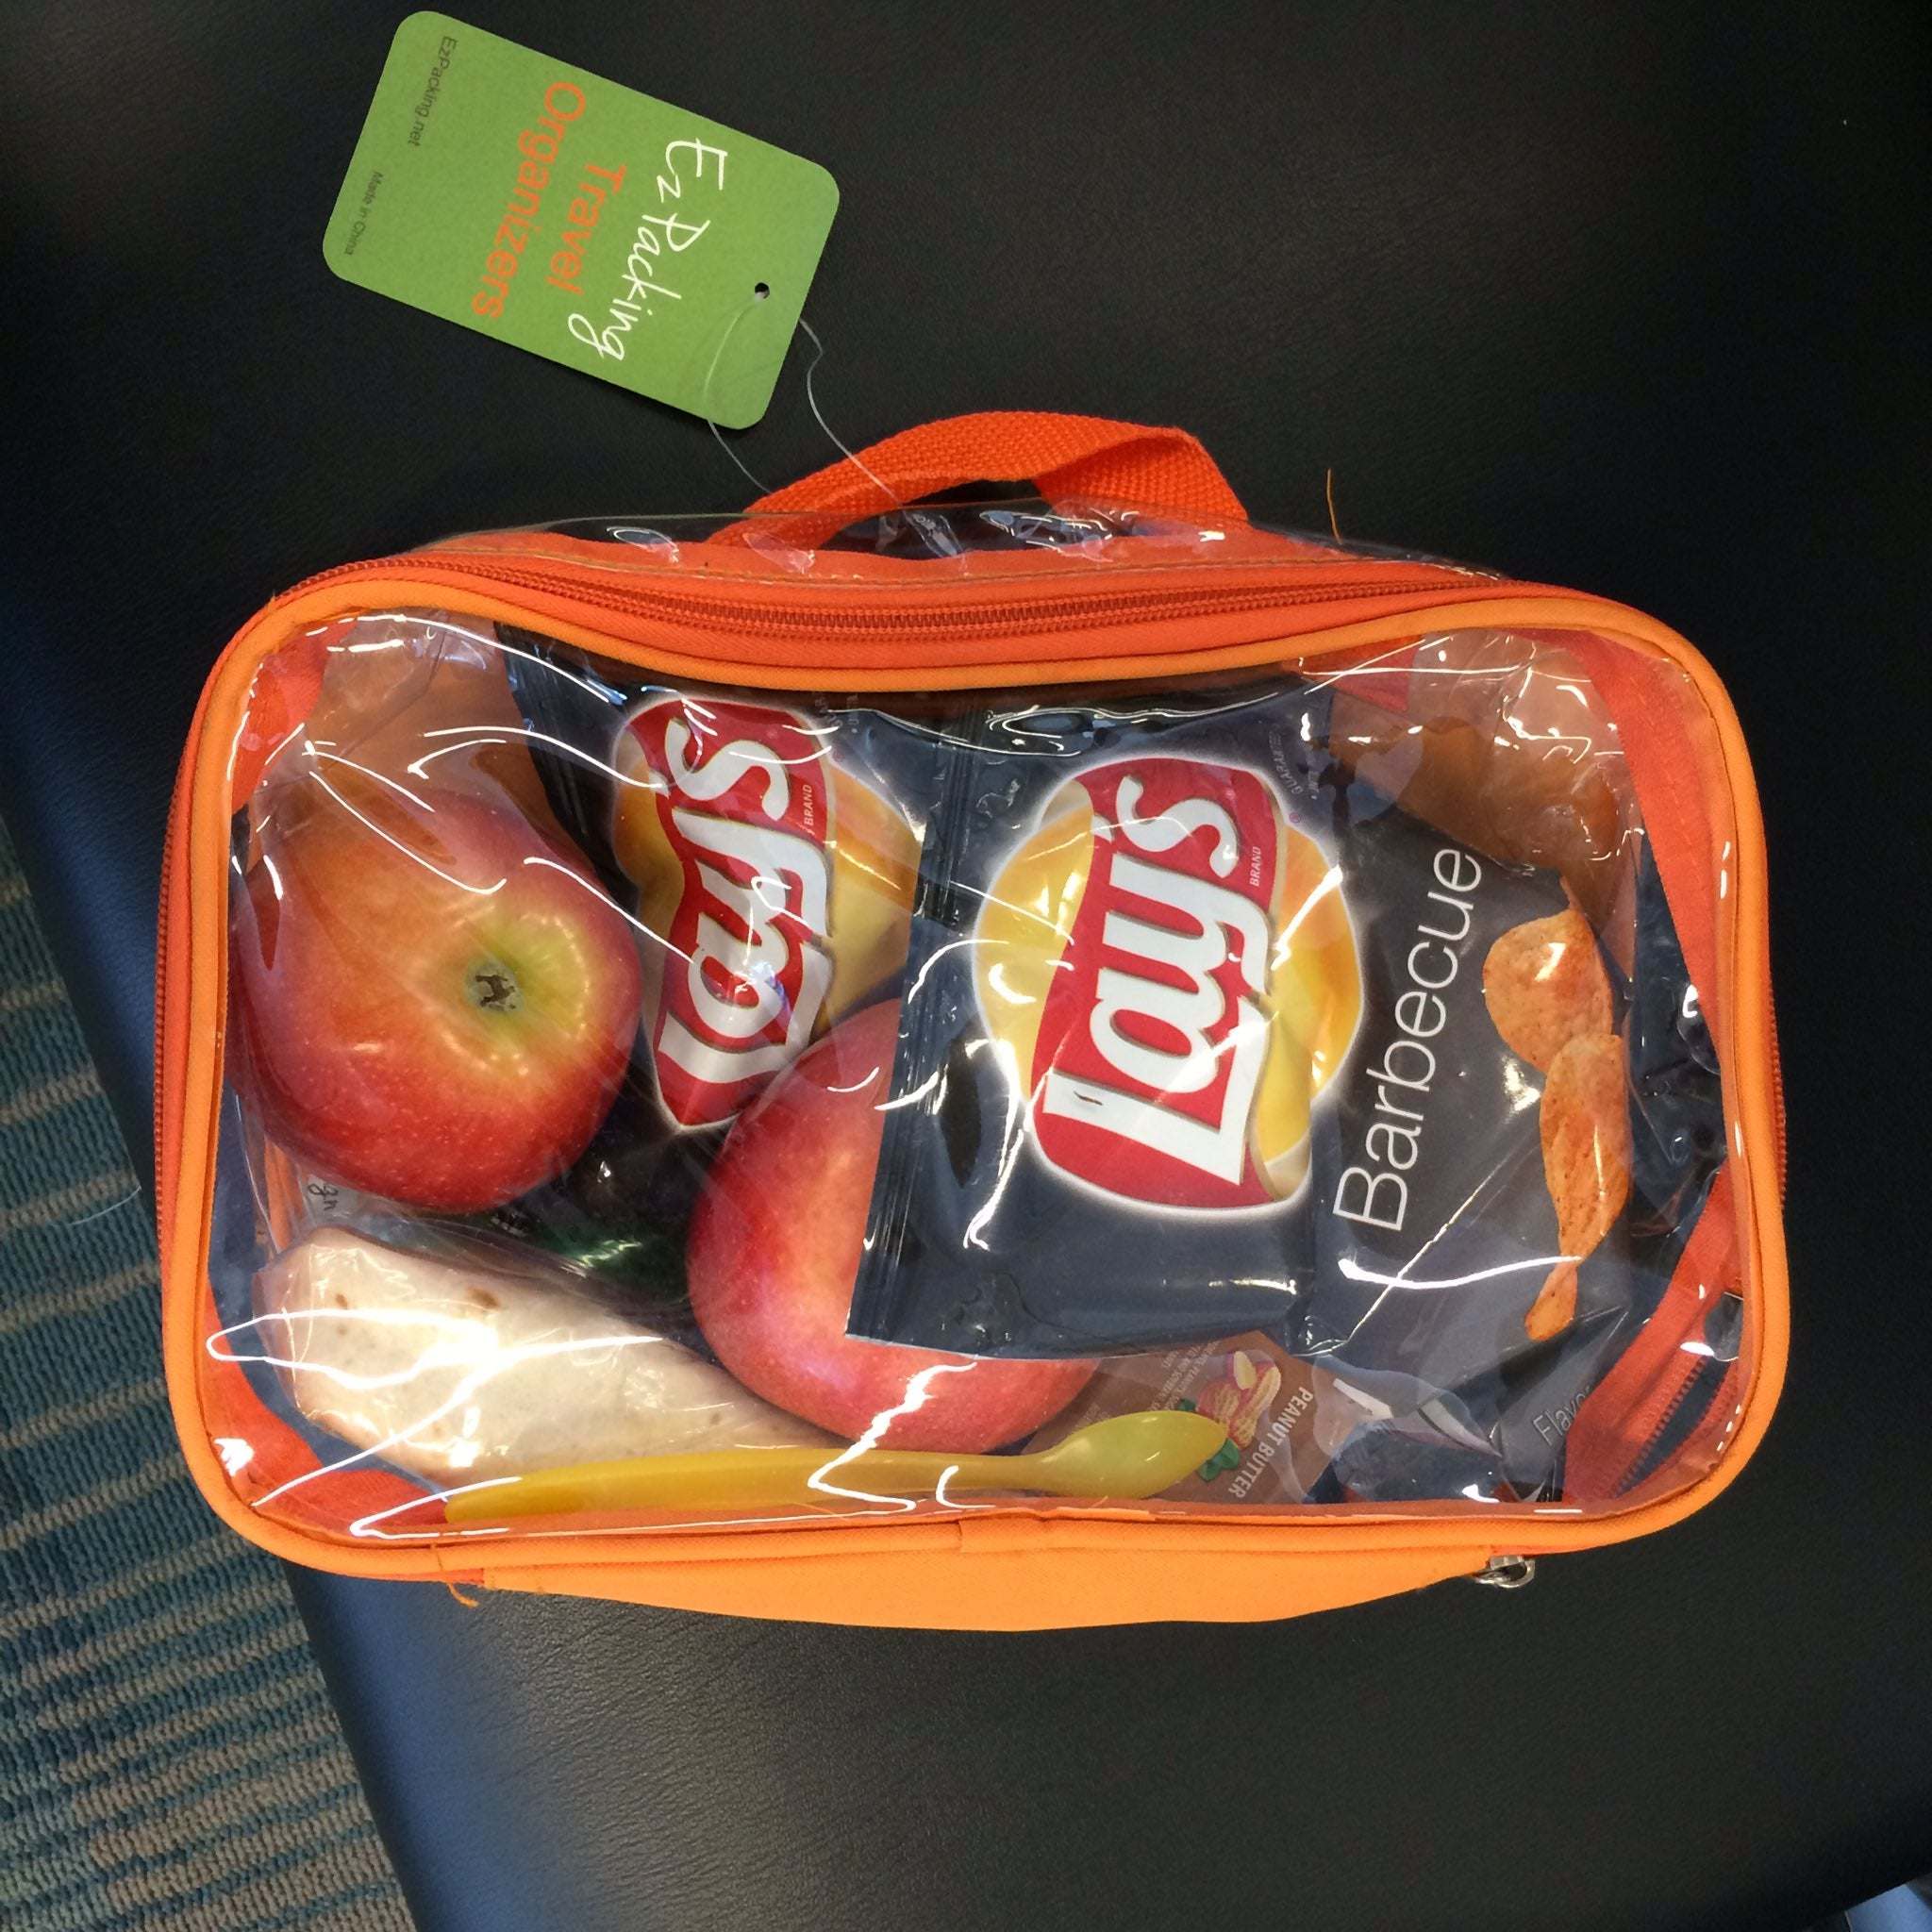 Fruits and chips in an orange small cube